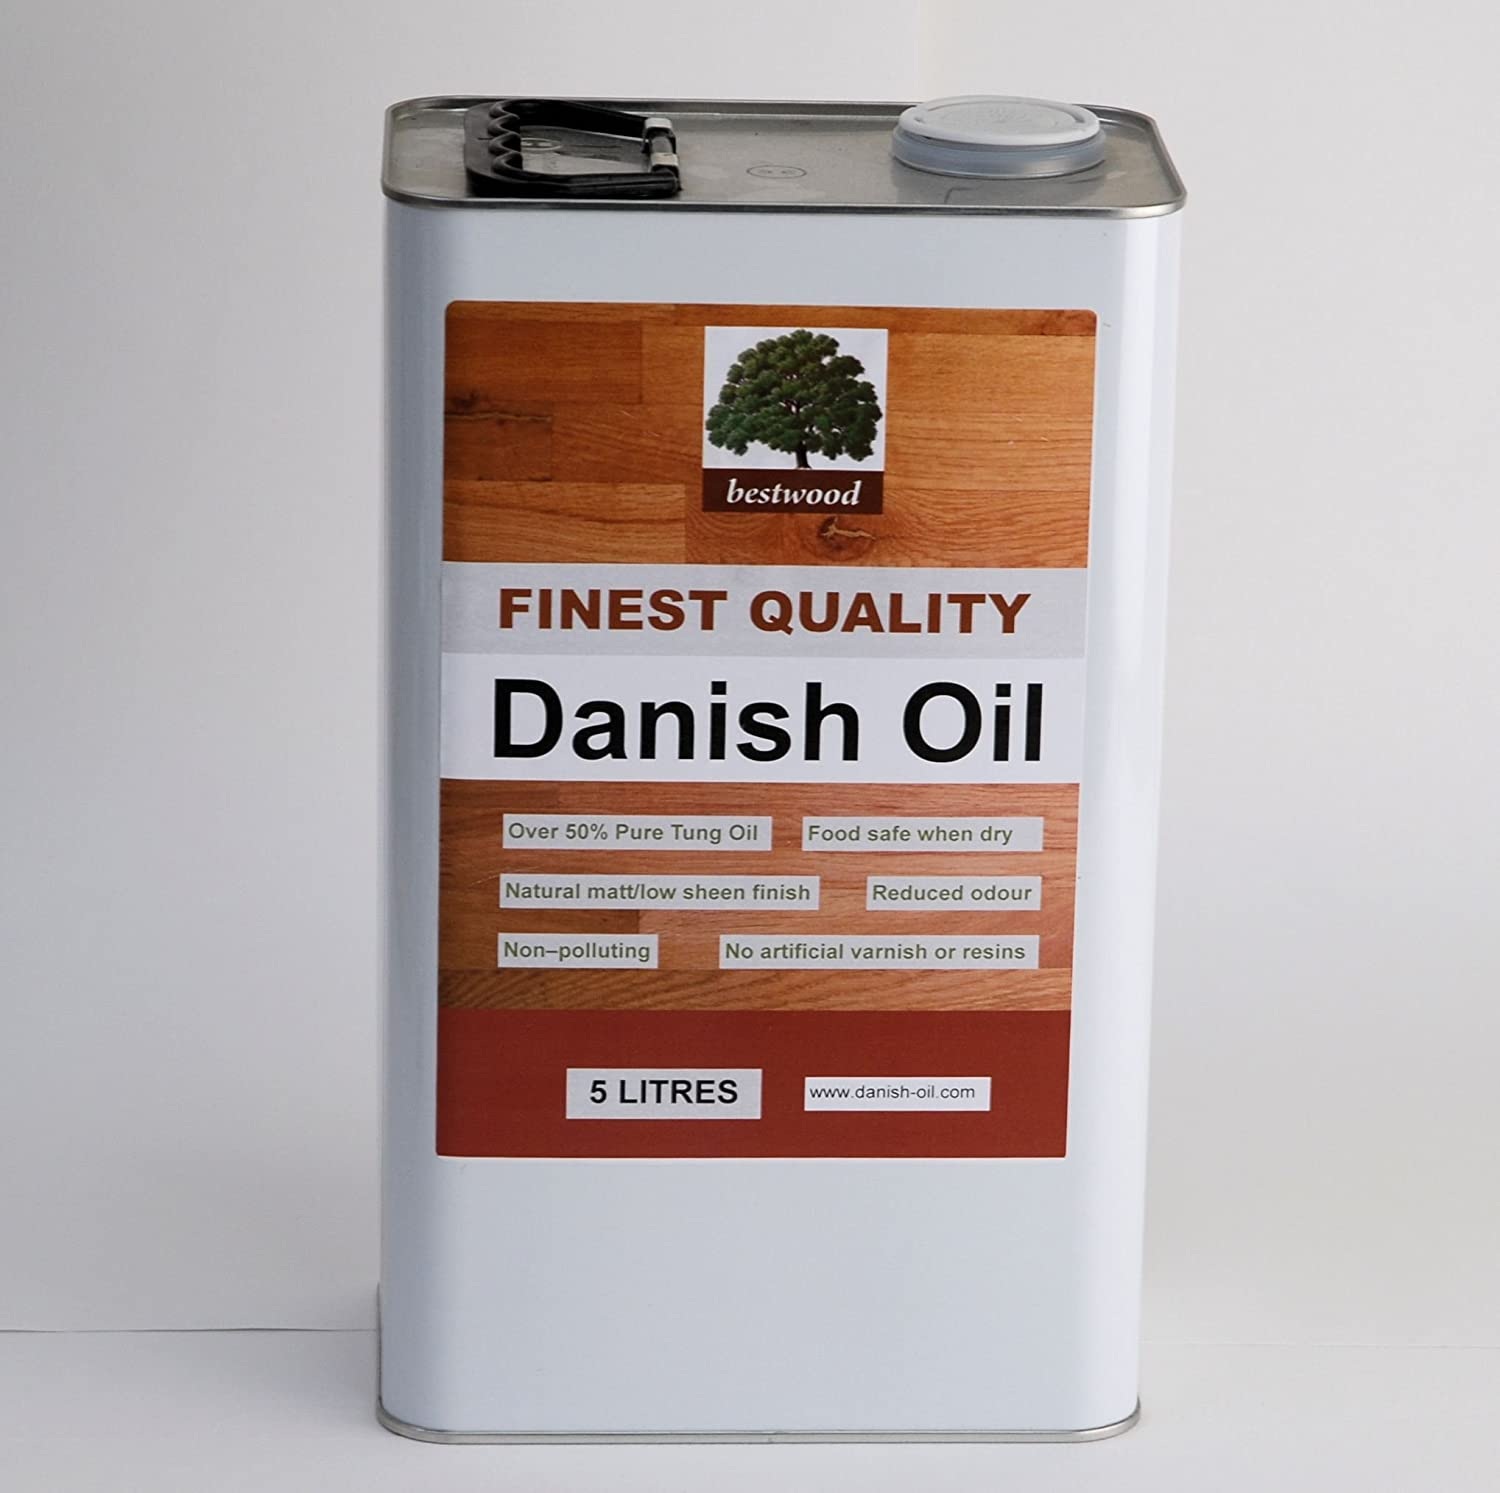 Tung oil vs danish oil - Danish Oil 5 Litres Bestwood Finest Quality Buy Direct Express Delivery